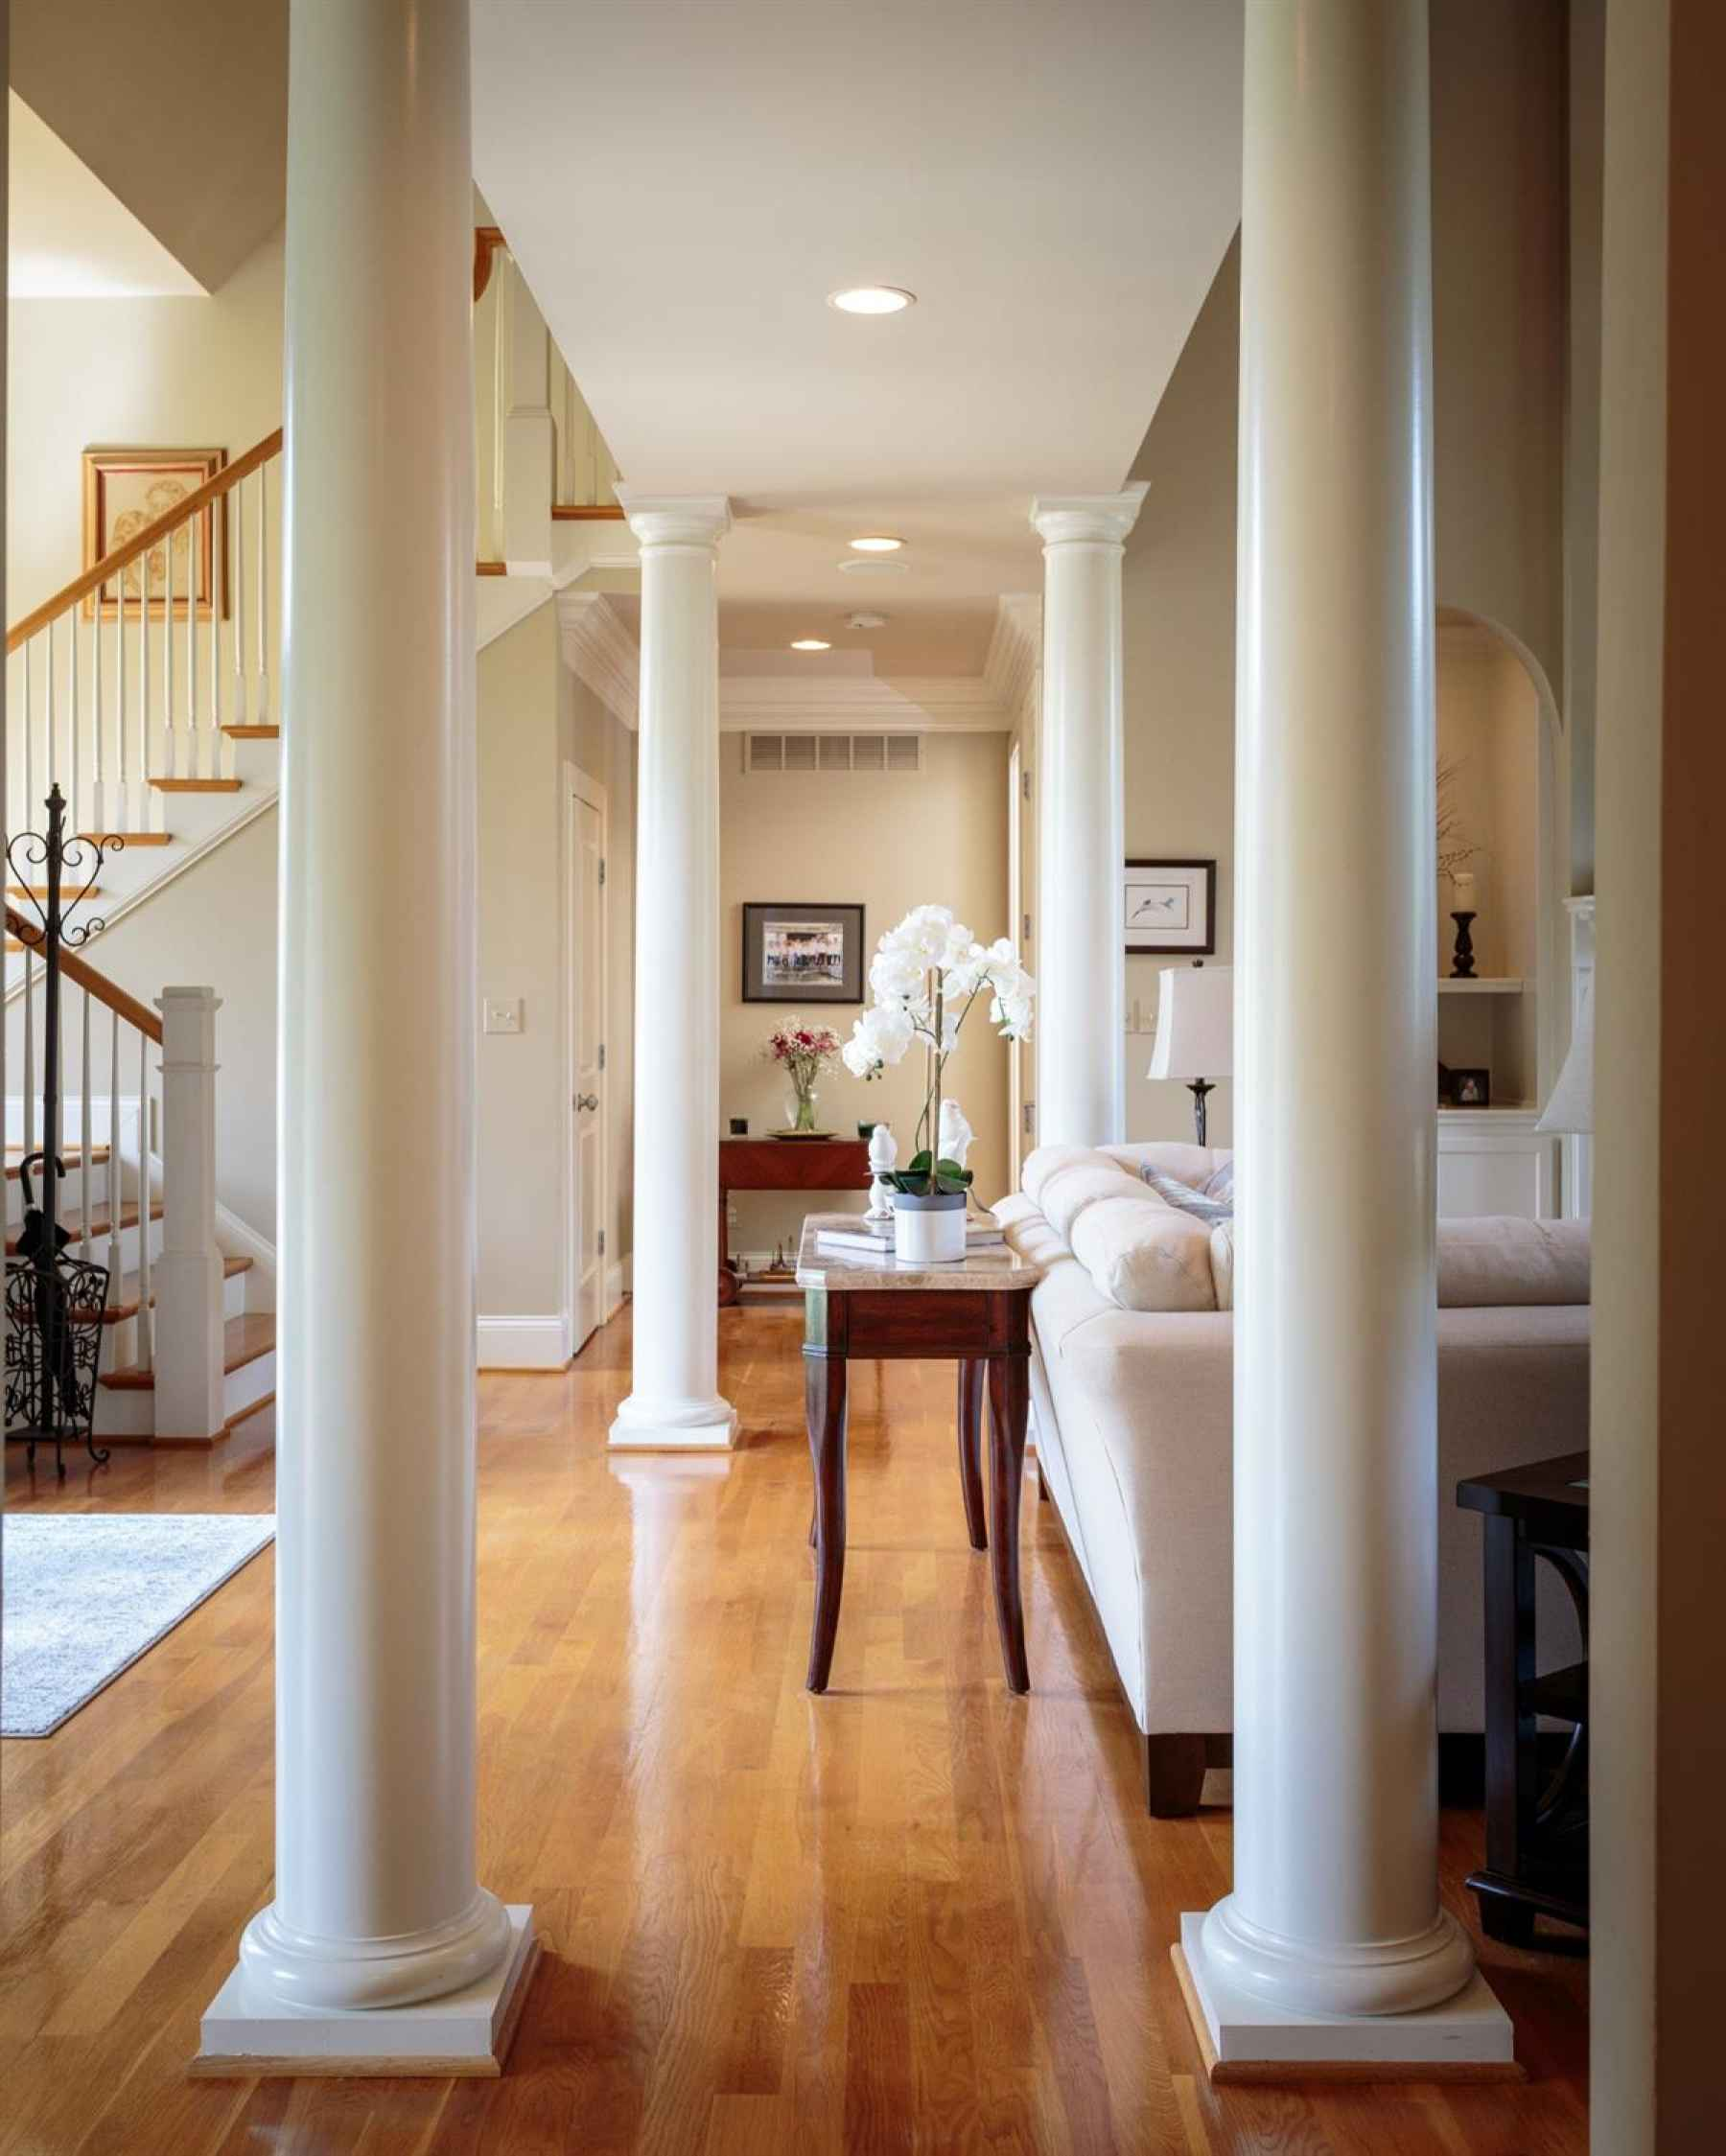 Foyer opens to the 2 Story Living Room. Master Suite is at the end of the hall to the right.